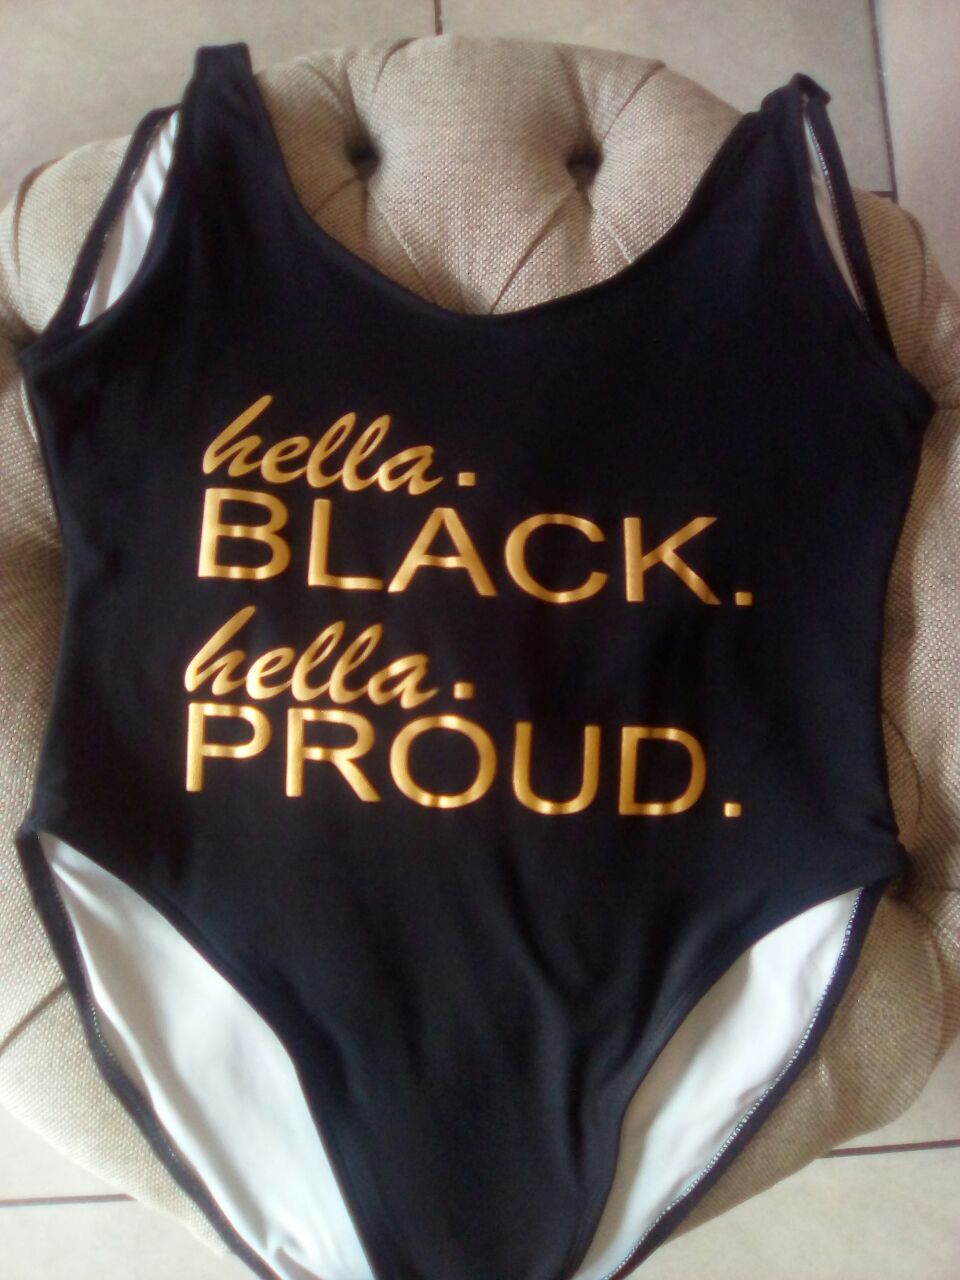 Hella BLACK, Hella PROUD swimsuit